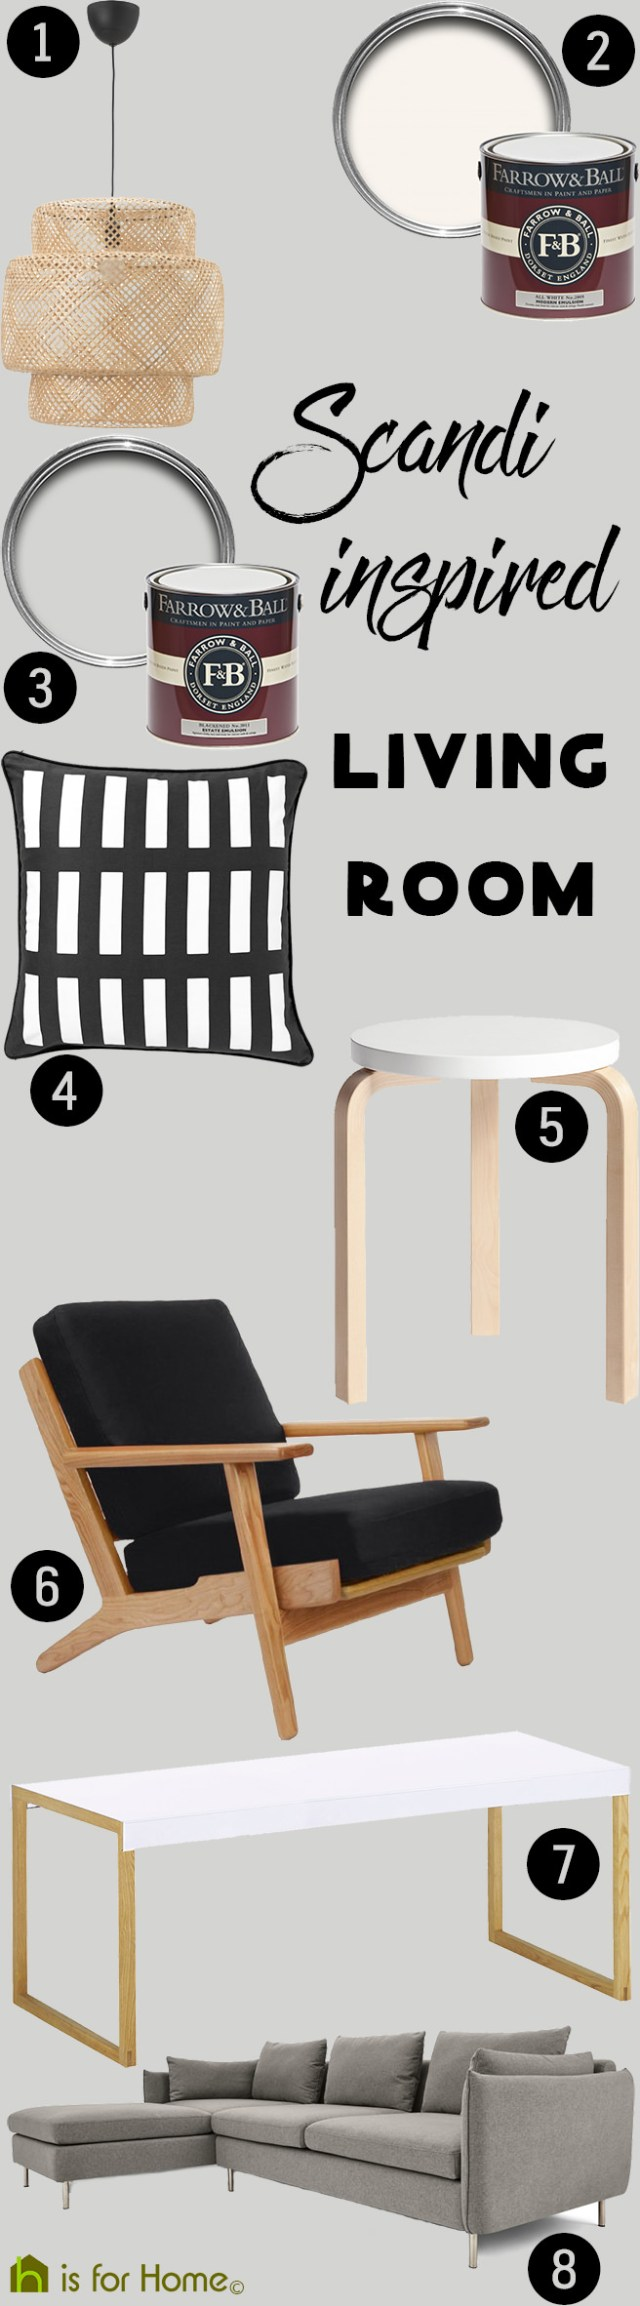 Get their look: Scandi inspired living room